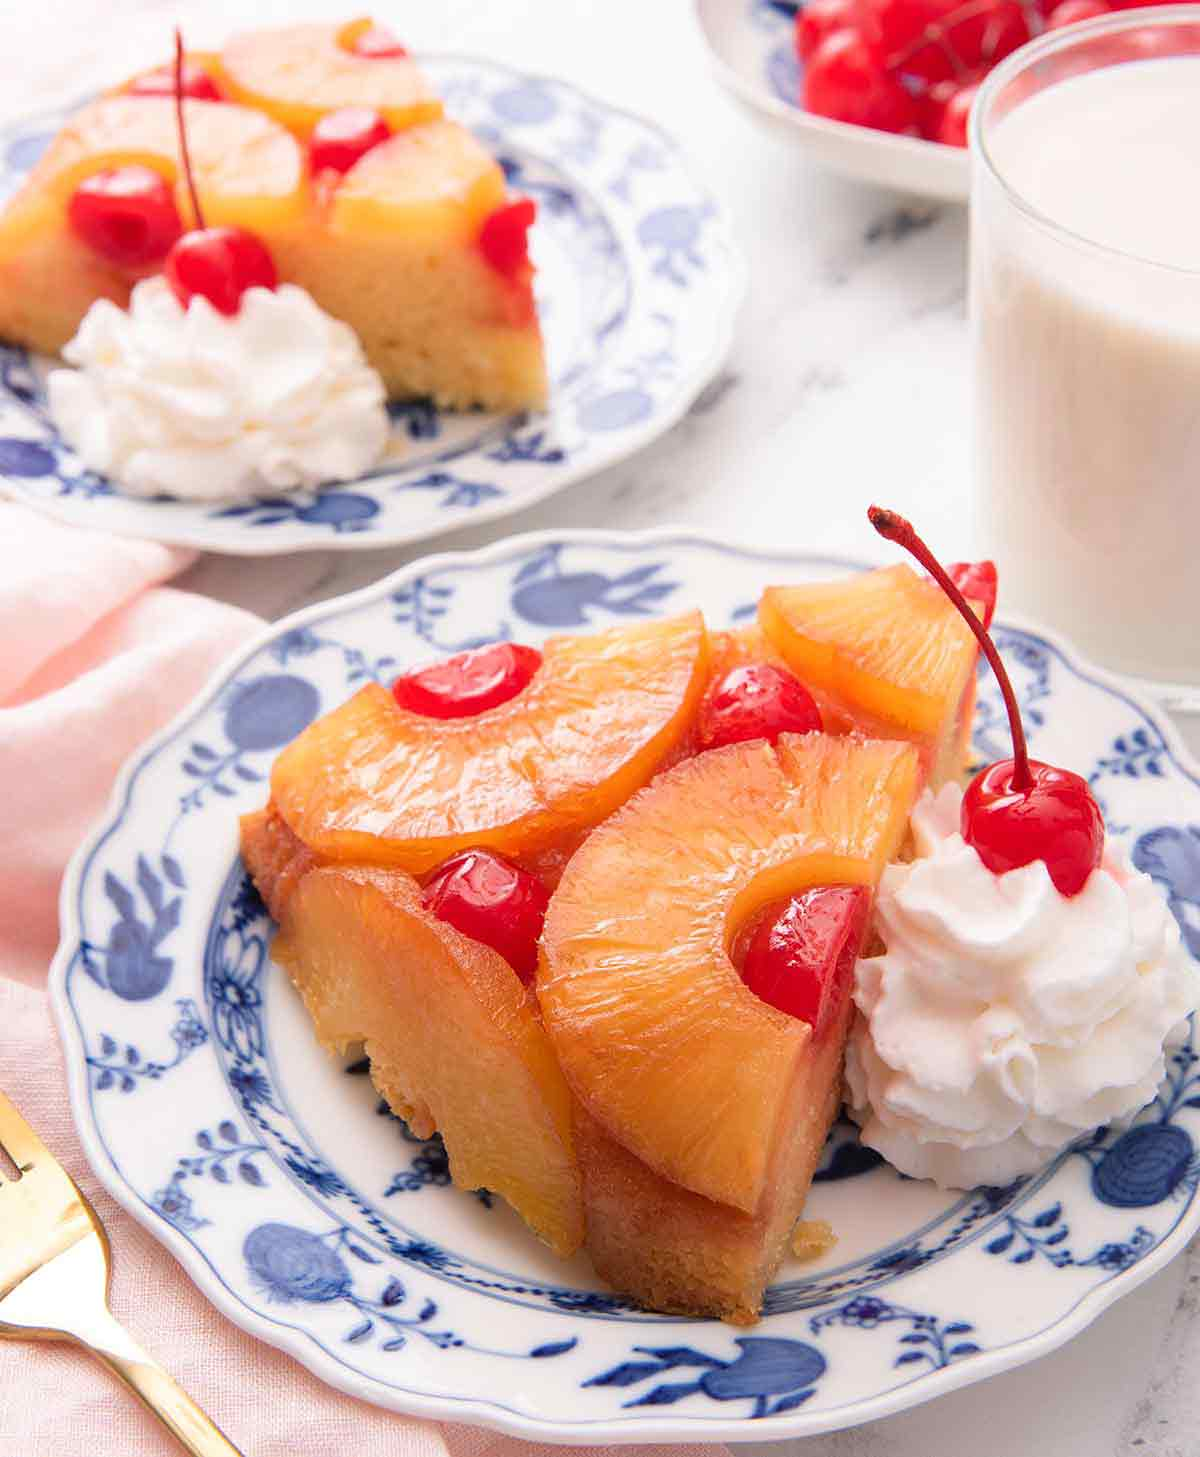 Two plates of pineapple upside down cake with one in the foreground, both with a dollop of whipped cream with a cherry on top.